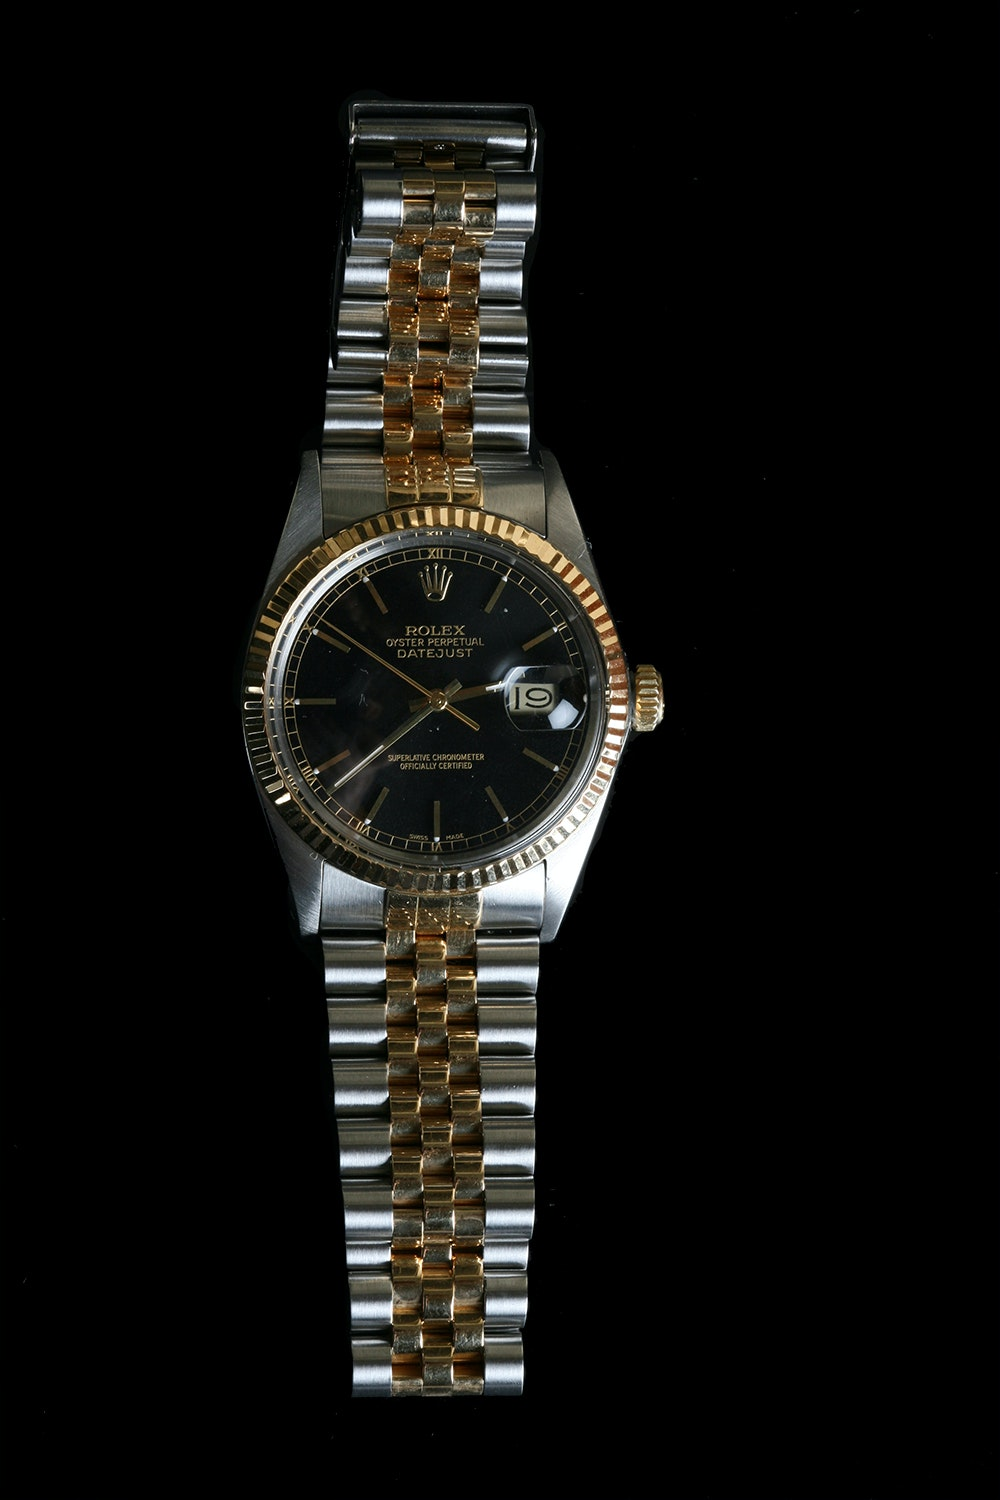 Vintage 18K Gold and Stainless Steel Rolex Datejust Watch